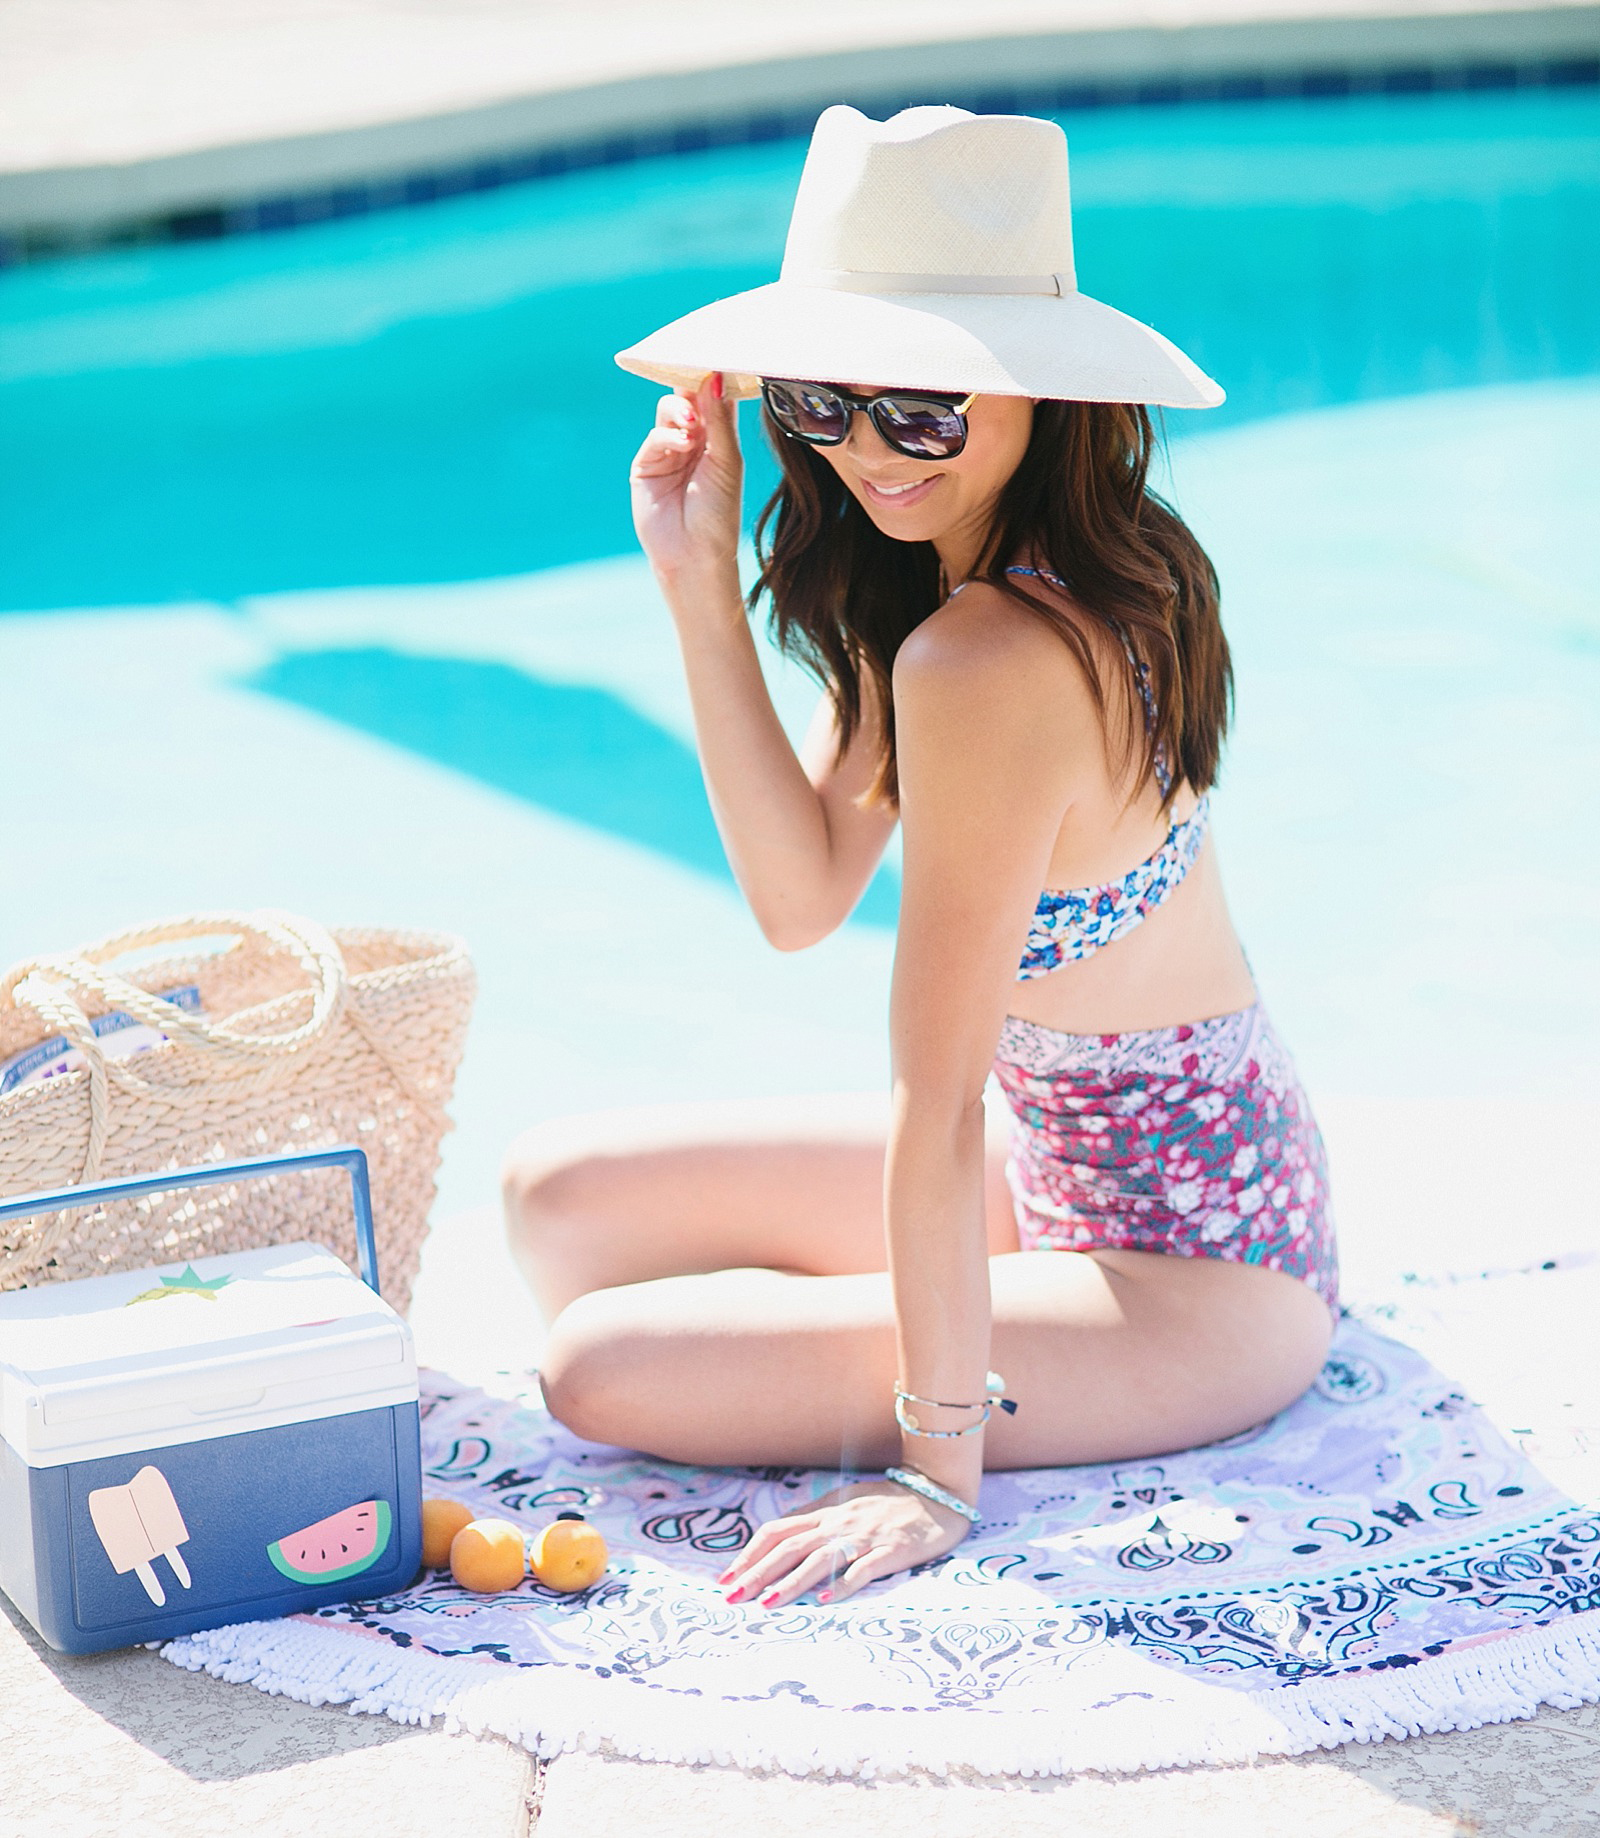 weight-watchers-pool-ready-summer-photoshoot-pool-shoot-model-lifestyle-blogger-arizona-phoenix-diana-elizabeth-blog-_00431